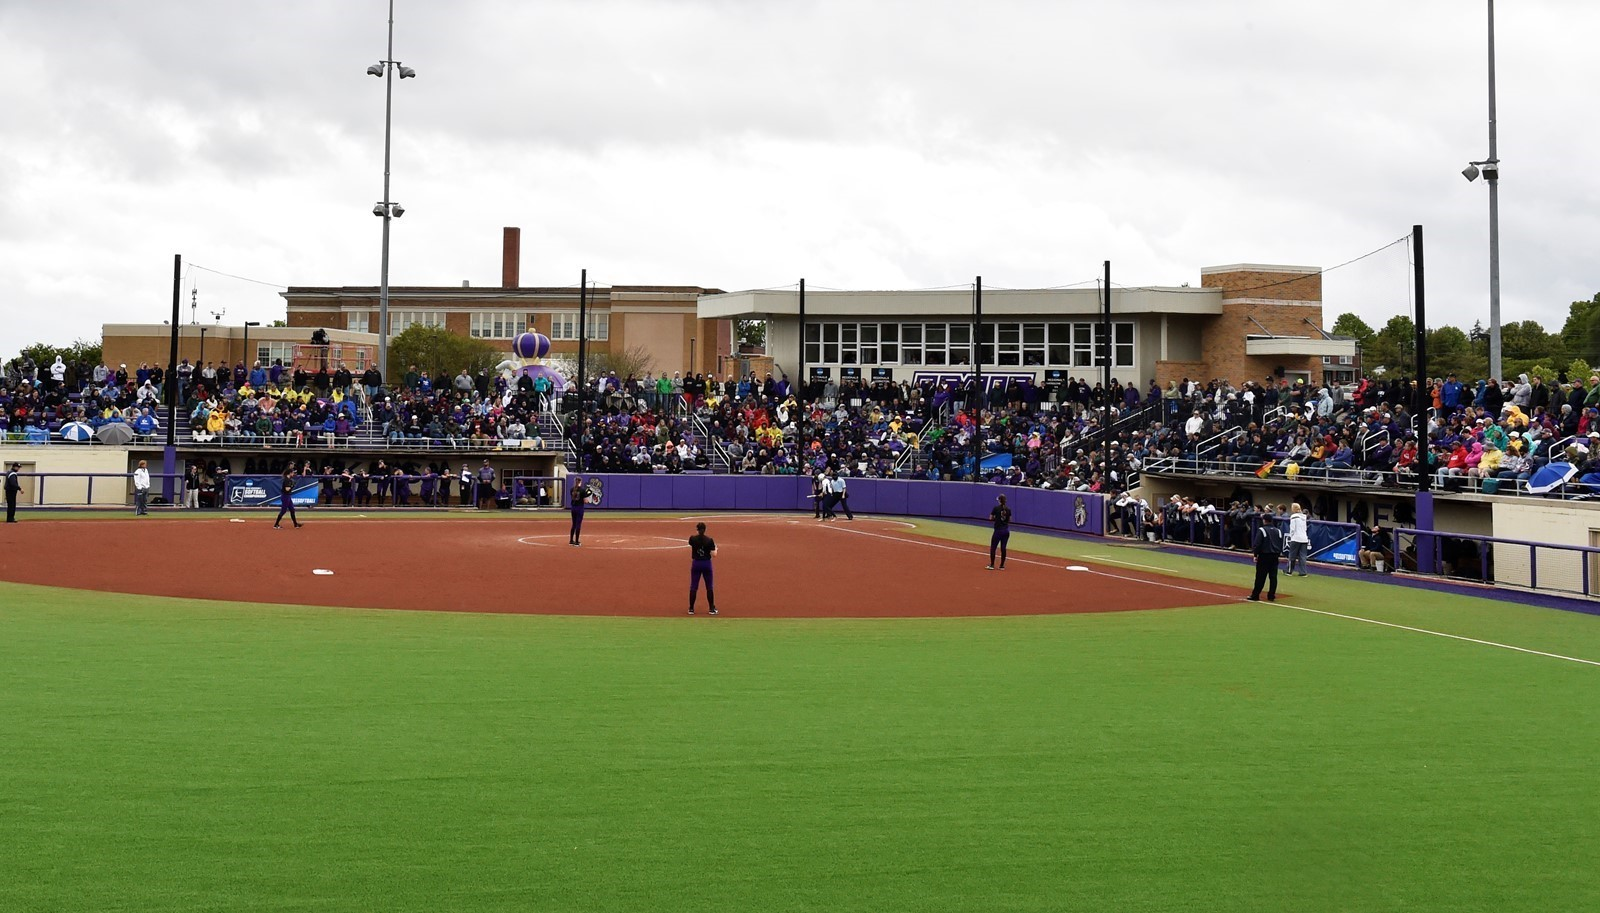 Softball, Ticketing: JMU Adds Additional Softball Seating, Limited Tickets Available Thursday